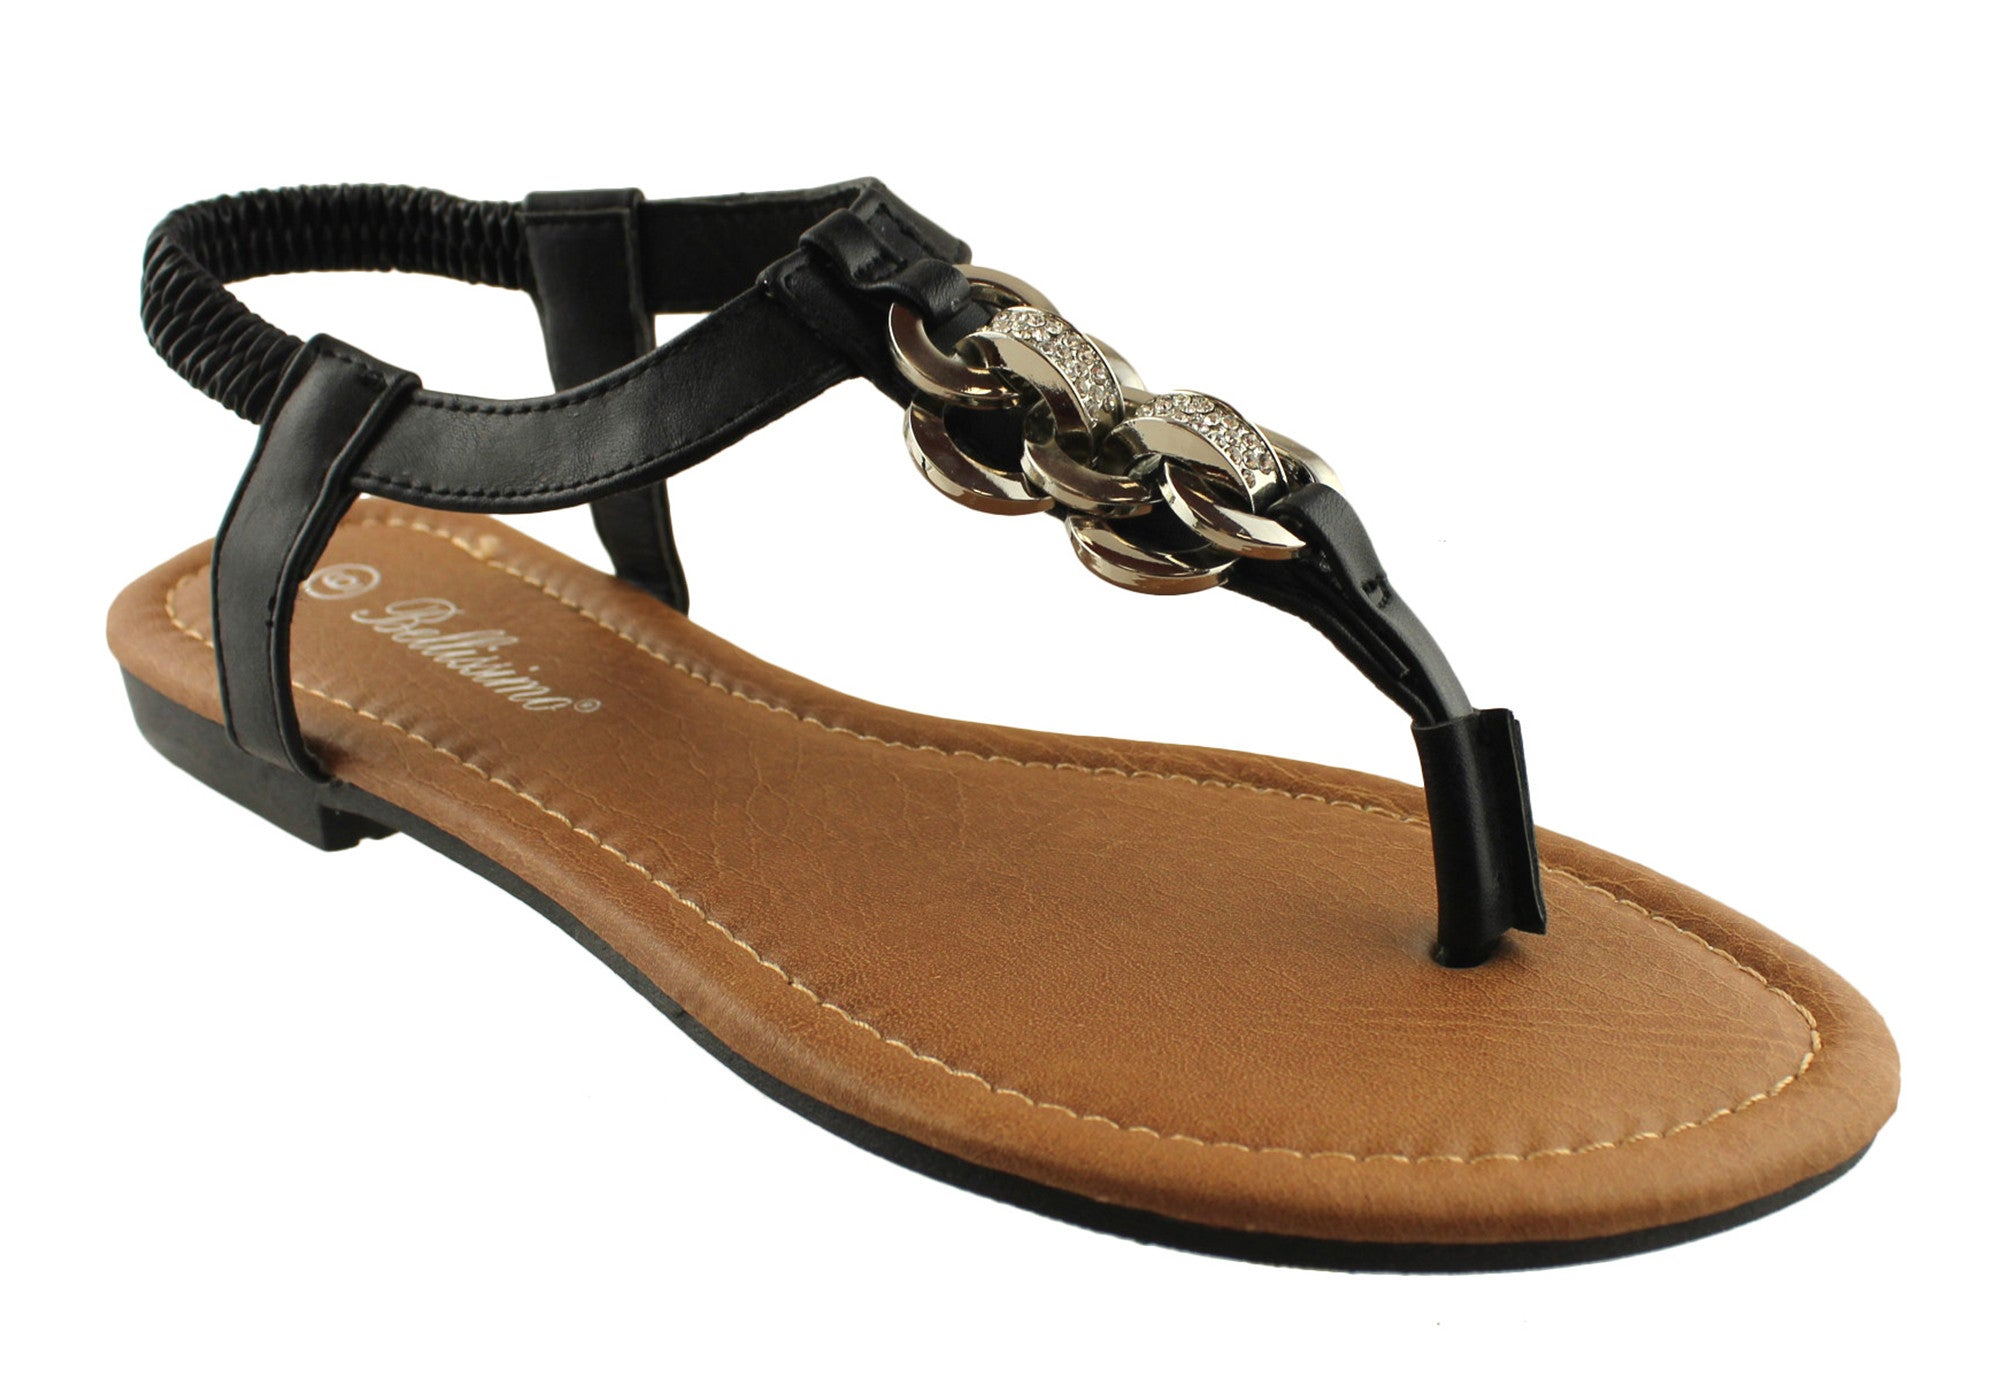 New-Bellissimo-Link-Womens-Fashion-Sandals